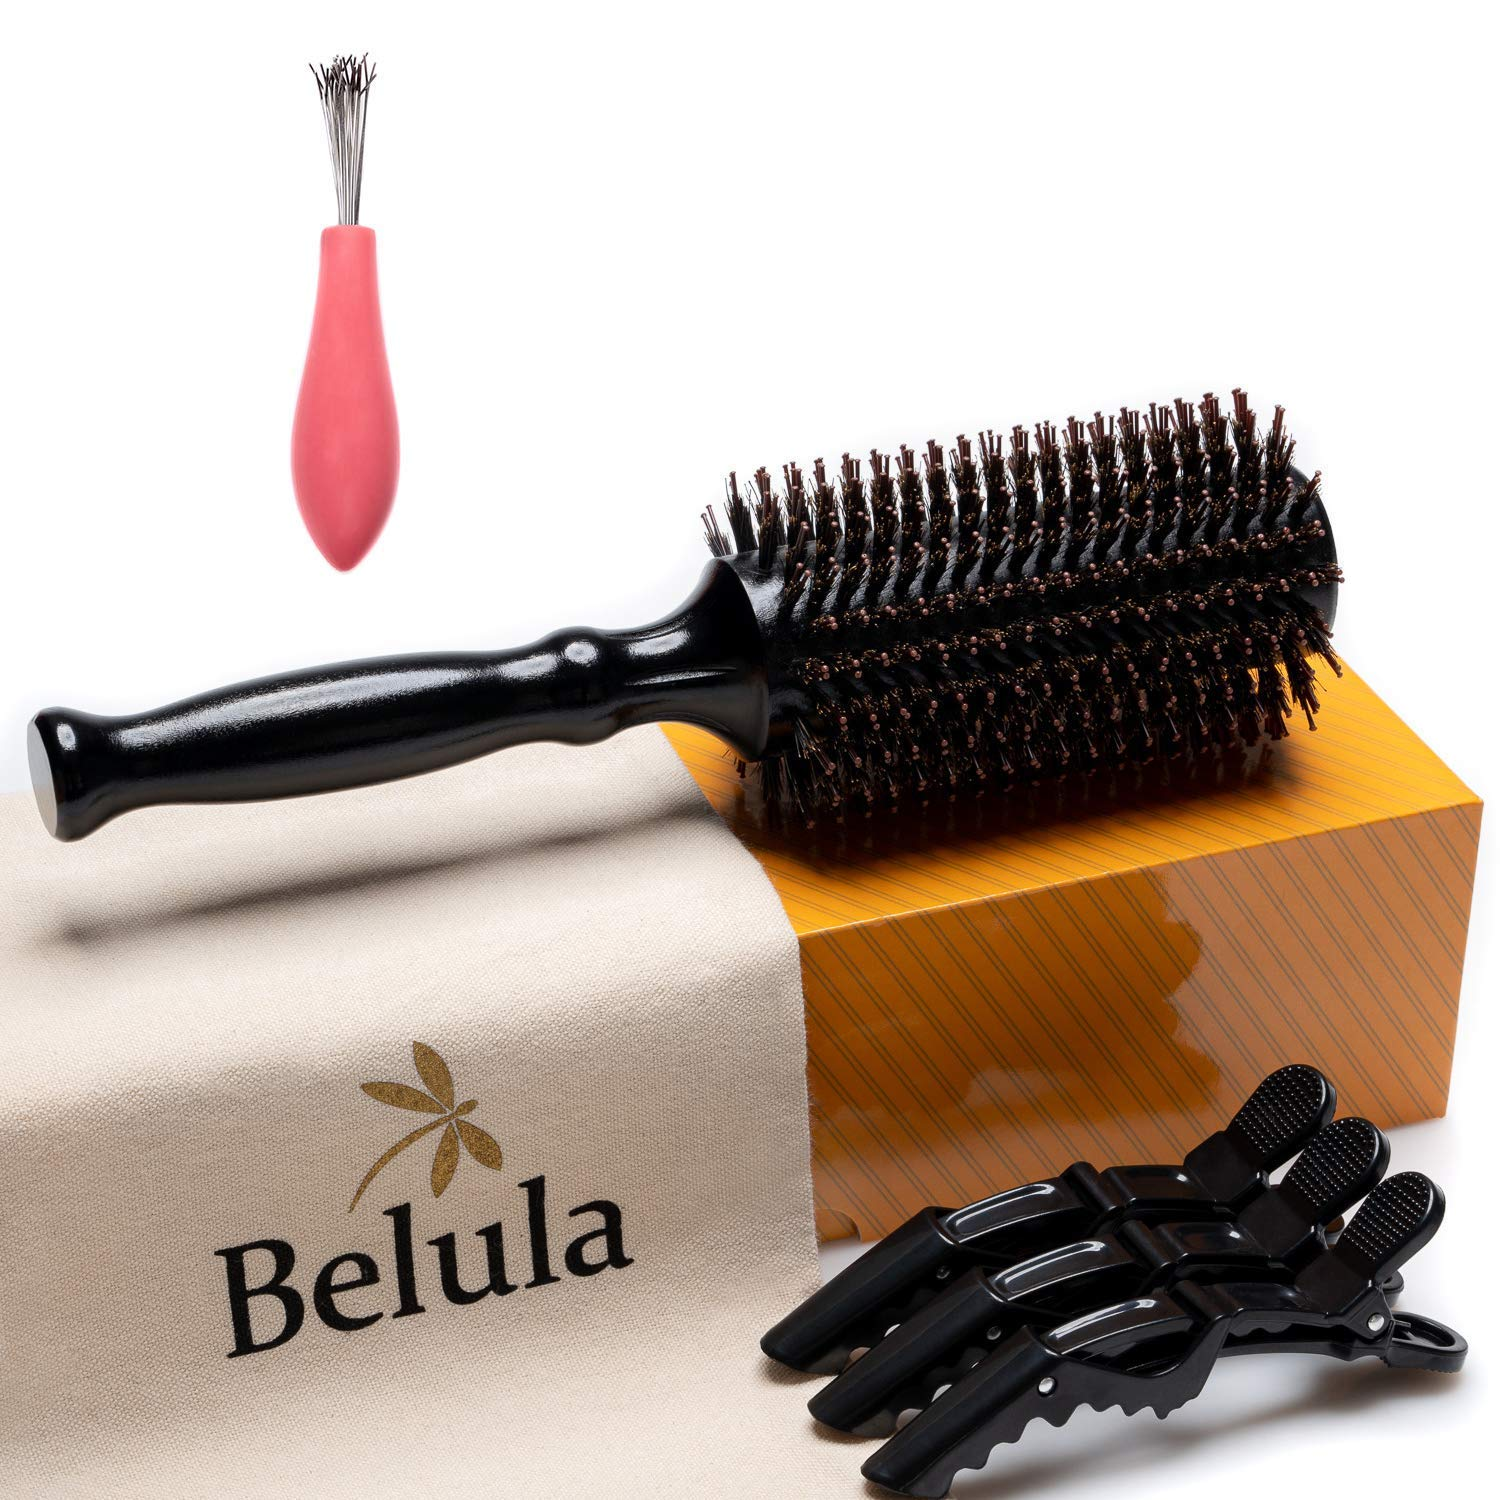 """Boar Bristle Round Brush for Blow Drying Set. Round Hair Brush With Medium 2.4"""" Wooden Barrel. Hairbrush Ideal to Add Volume and Body. Free 3 x Hair Clips & Travel Bag."""